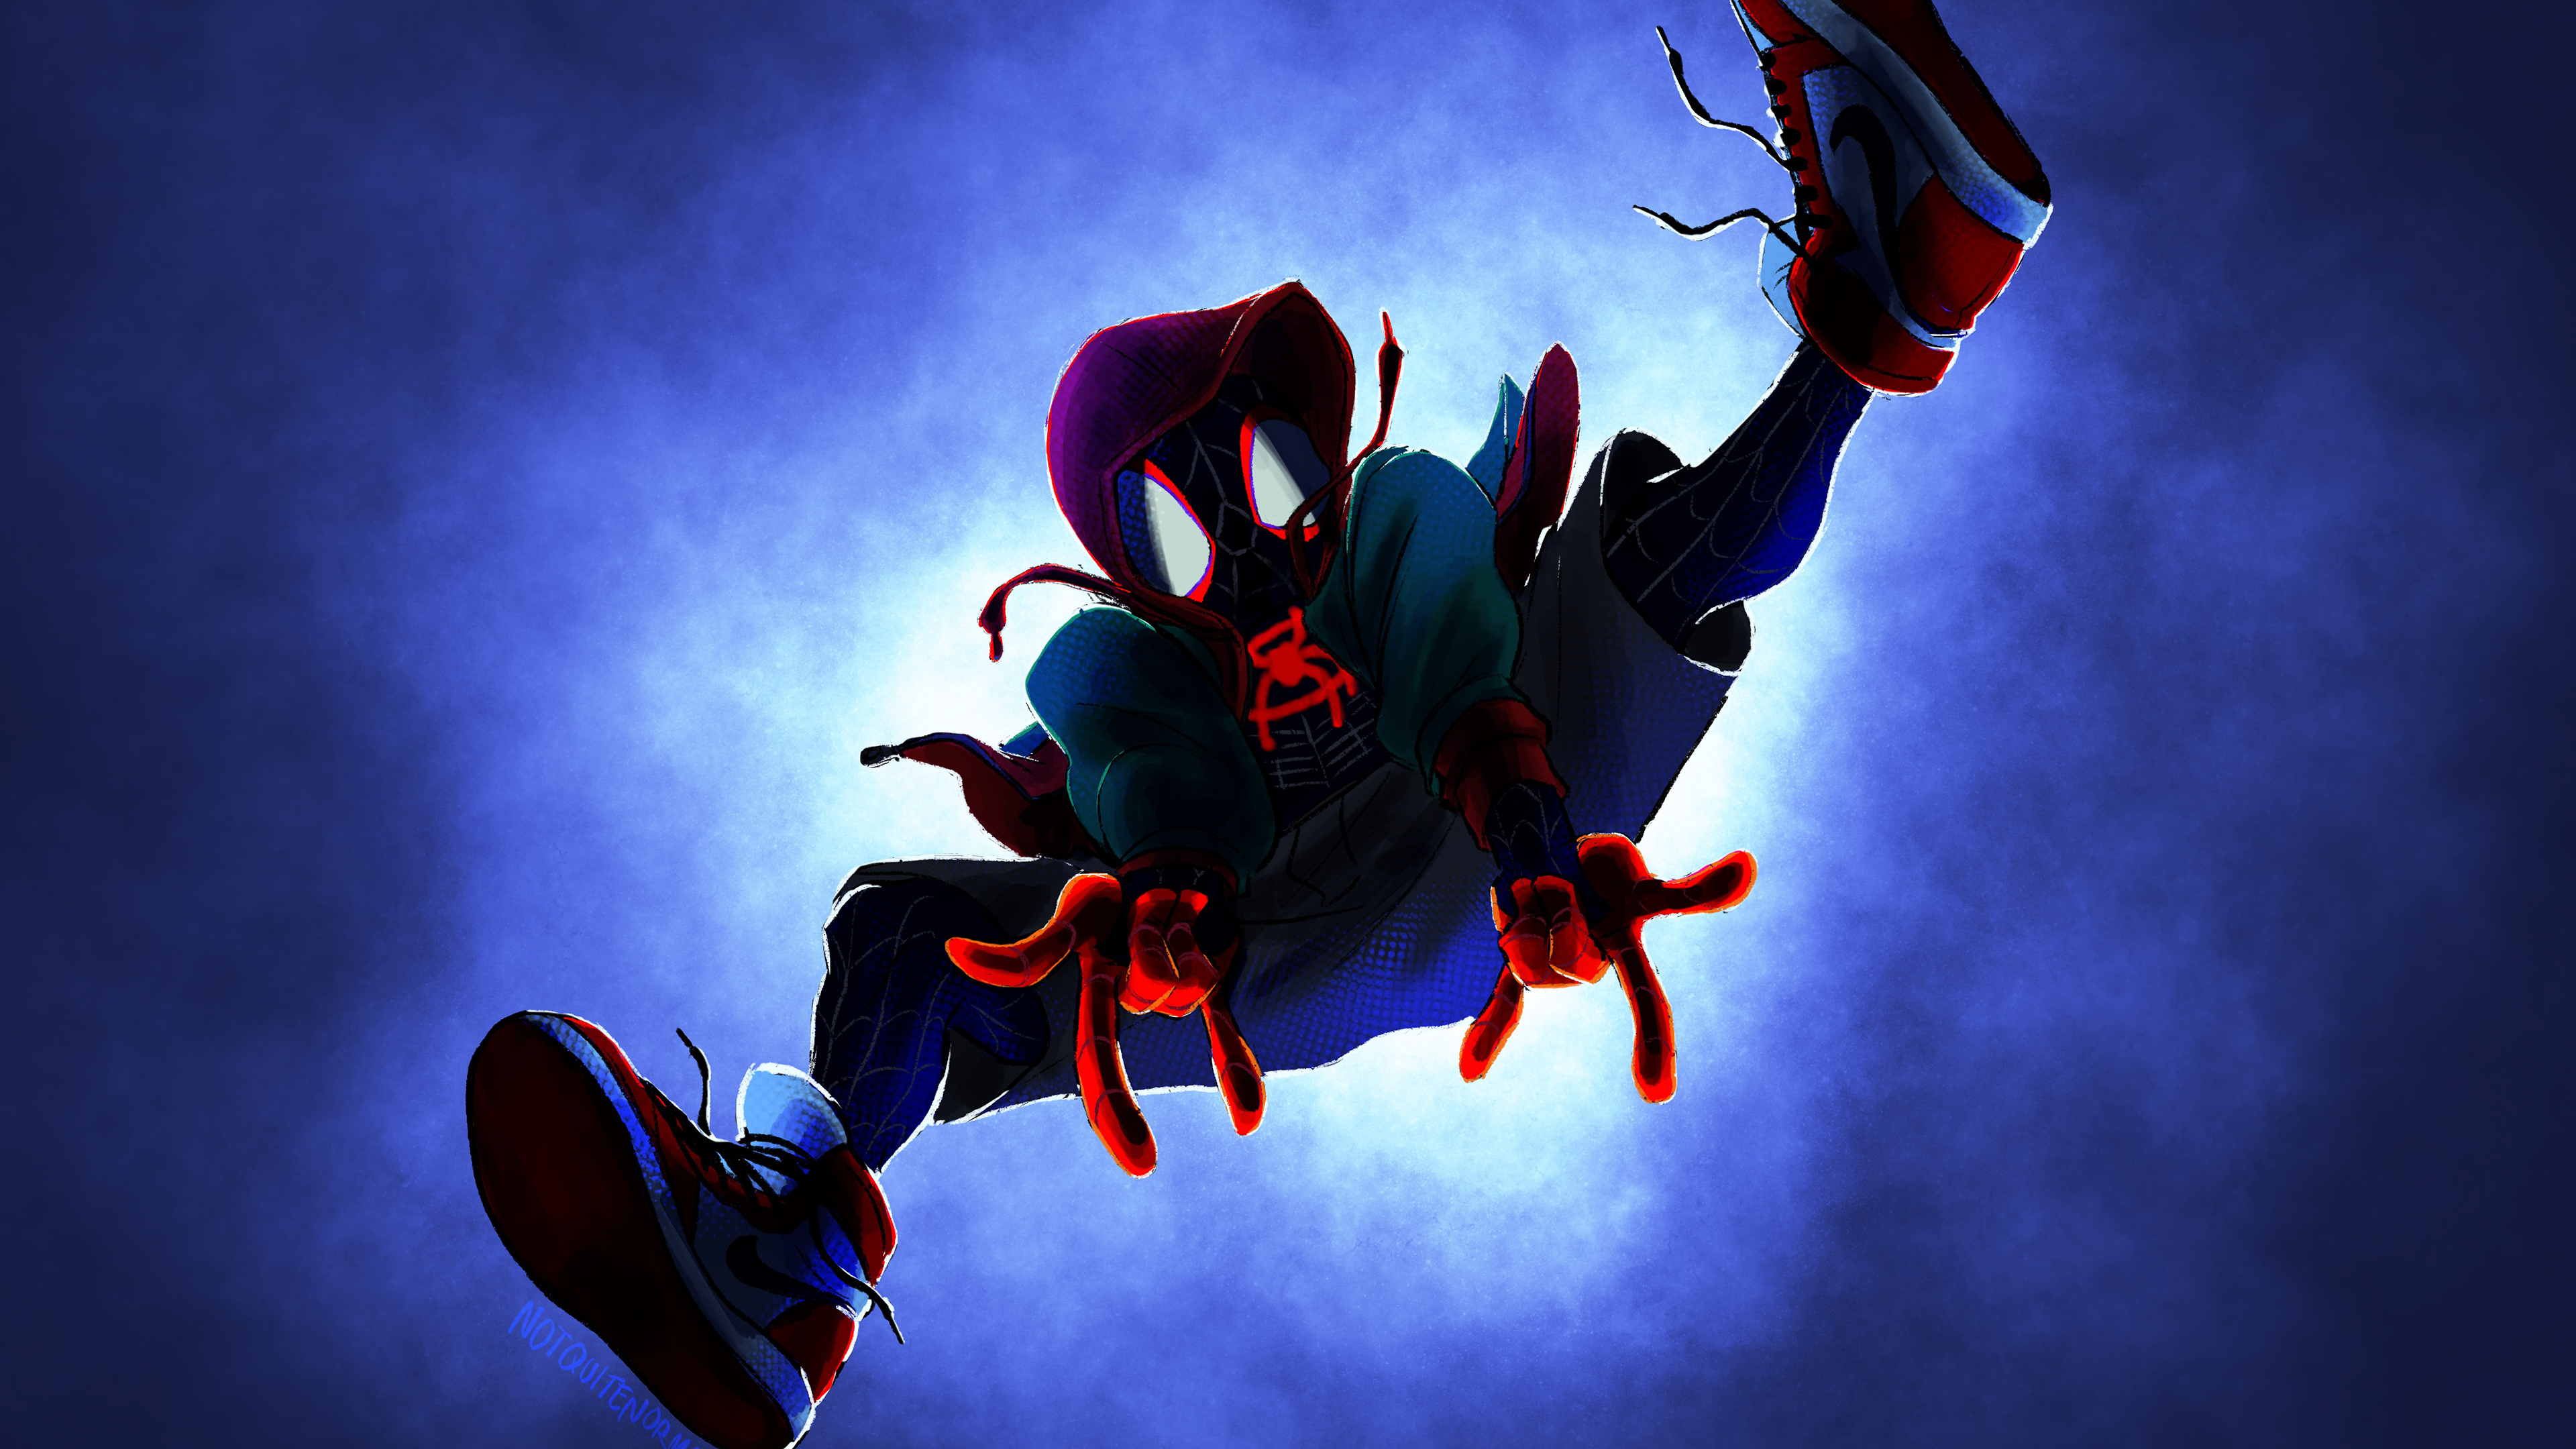 spiderman into the spider verse 1568055014 - Spiderman Into The Spider Verse - superheroes wallpapers, spiderman wallpapers, spiderman into the spider verse wallpapers, hd-wallpapers, digital art wallpapers, deviantart wallpapers, artwork wallpapers, artist wallpapers, 4k-wallpapers